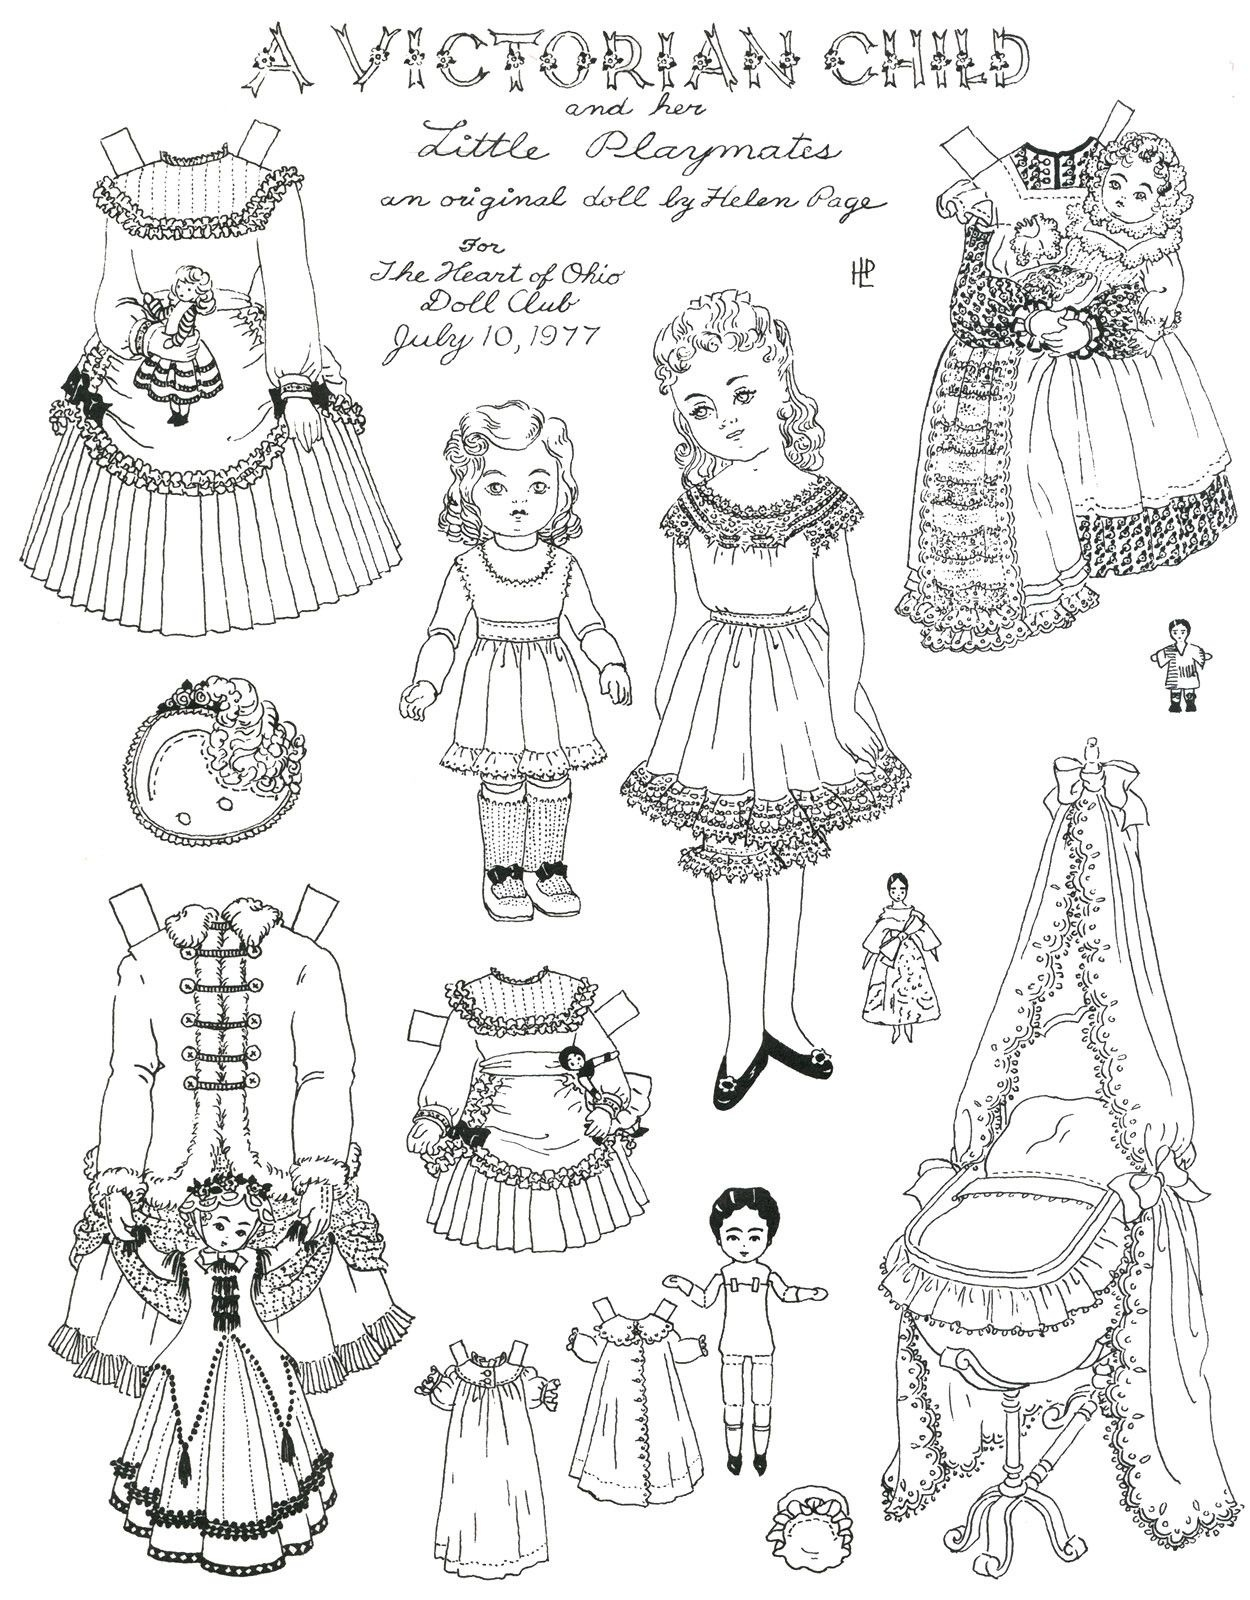 Paper Dress Up Dolls Template Best Of Victorian Paper Dolls - Free Printable Paper Dolls